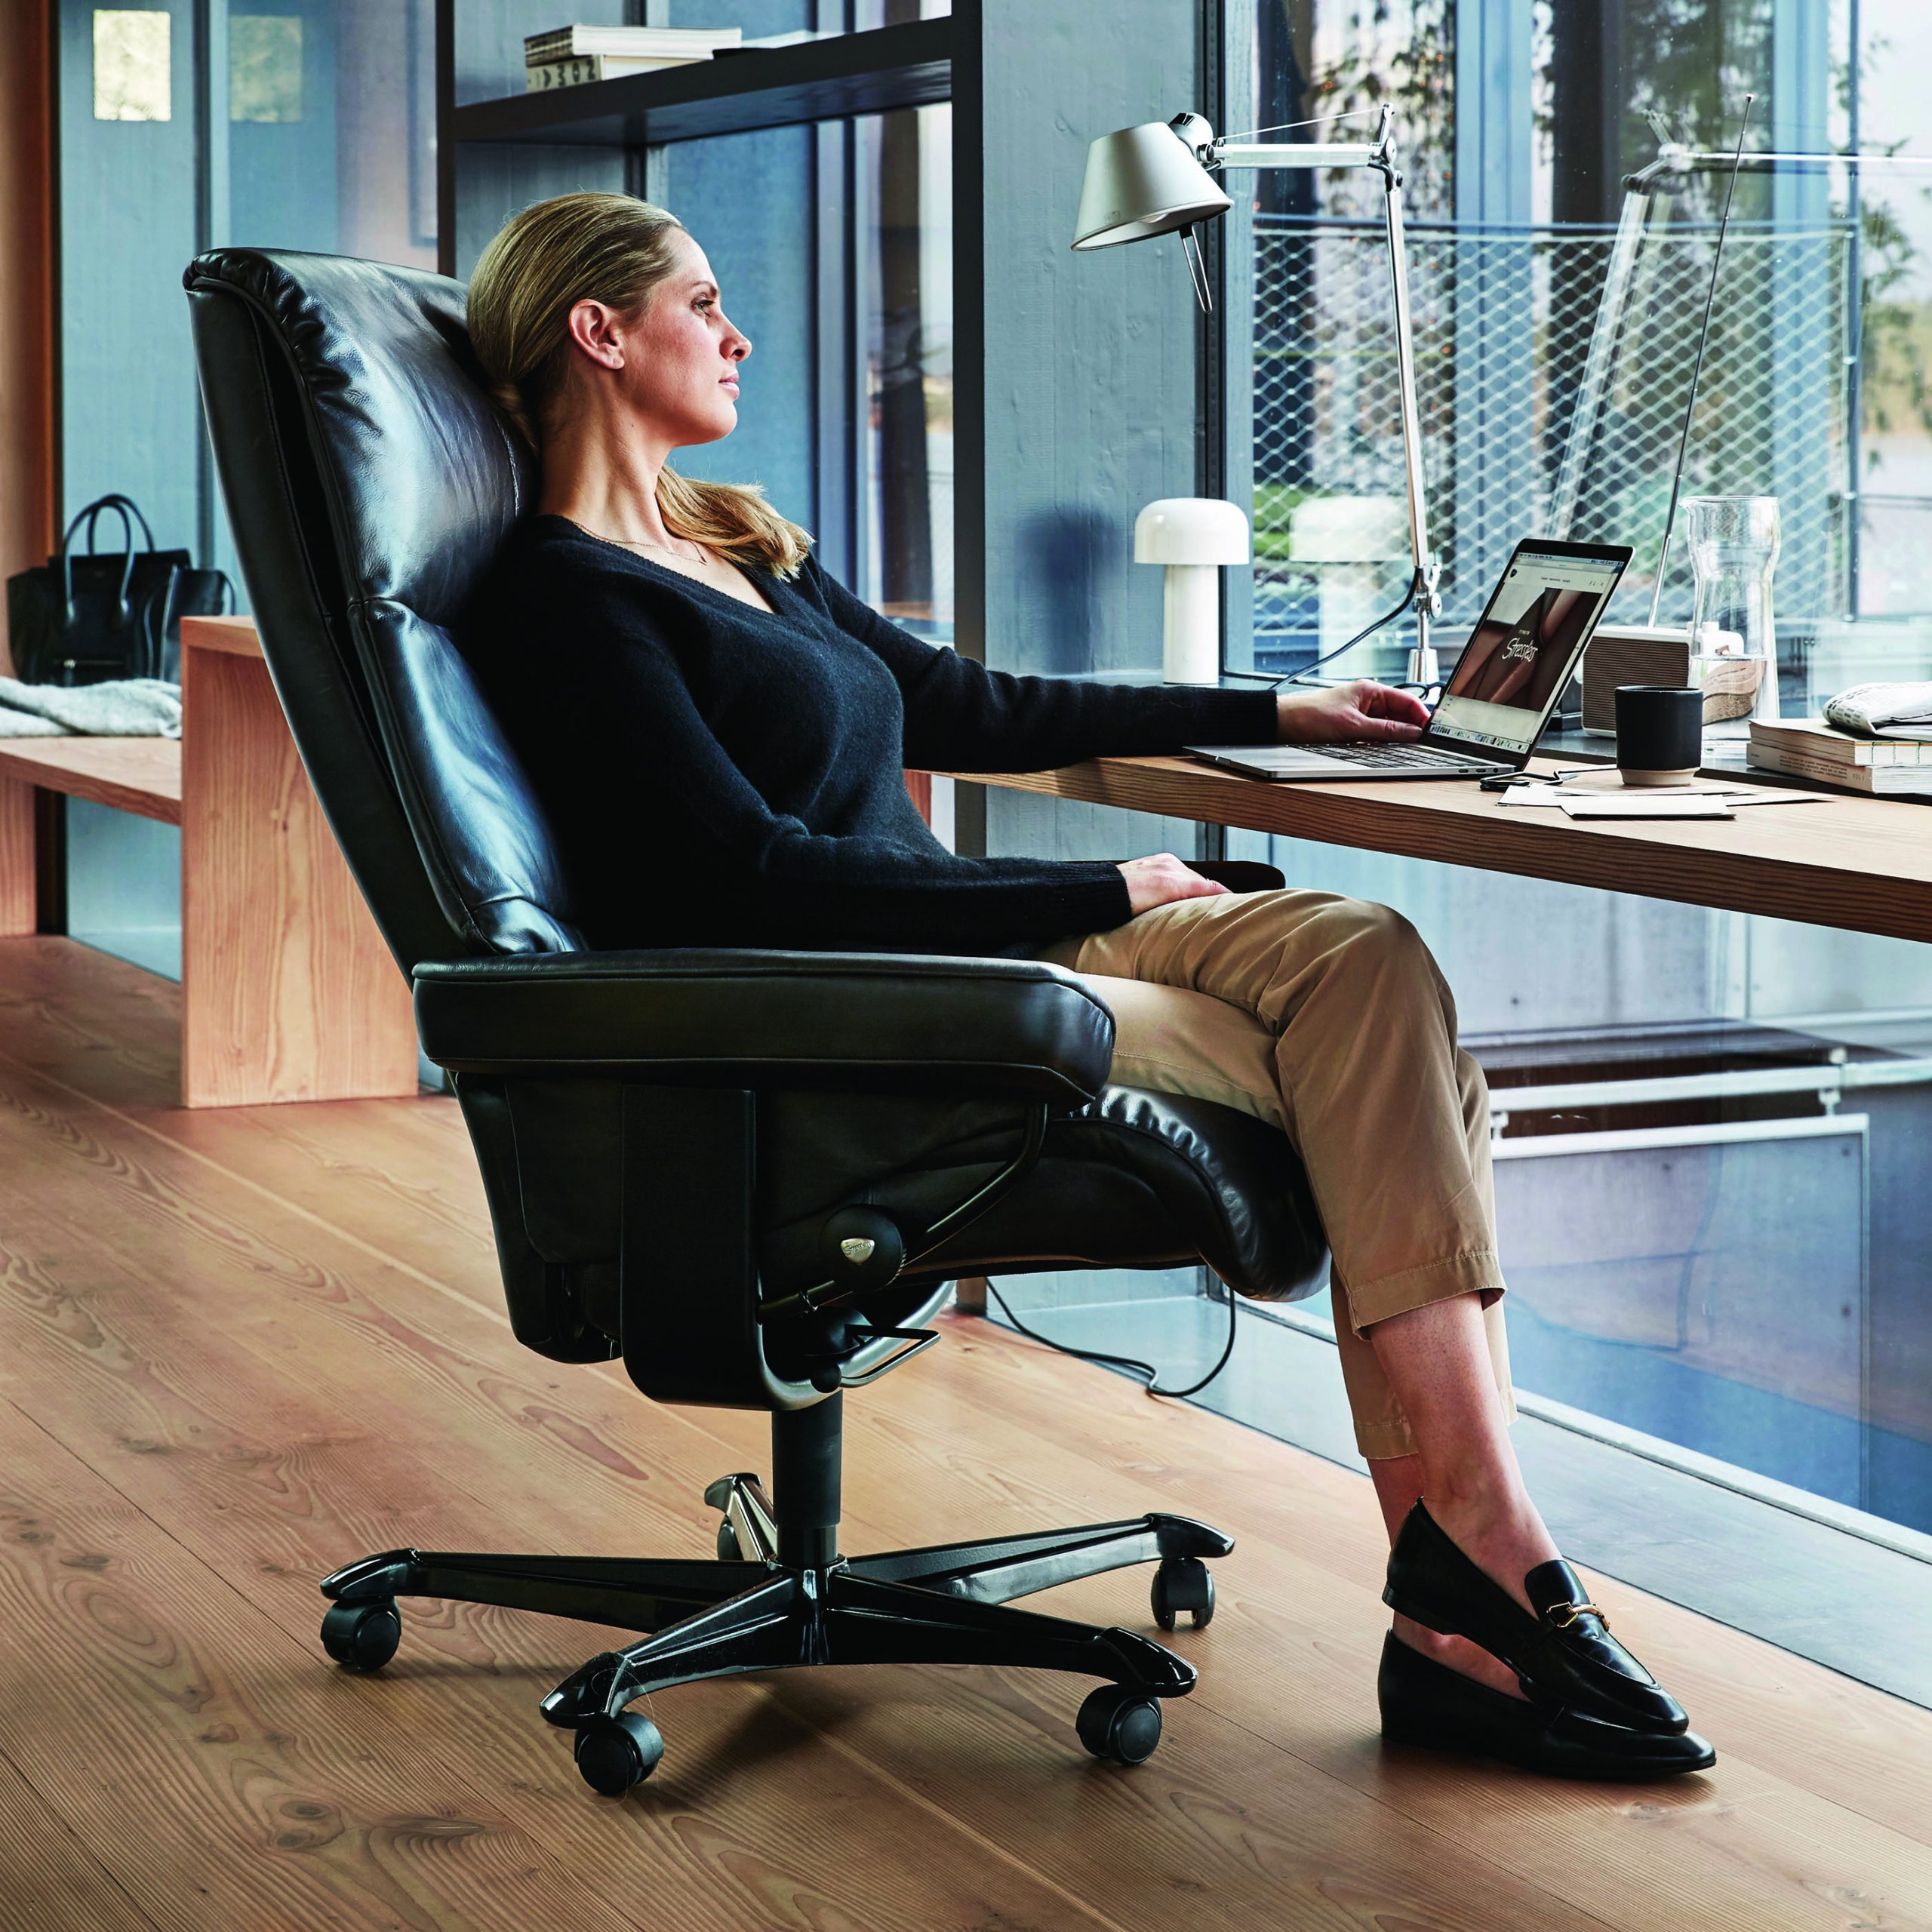 Stressless Office Chair and Lady